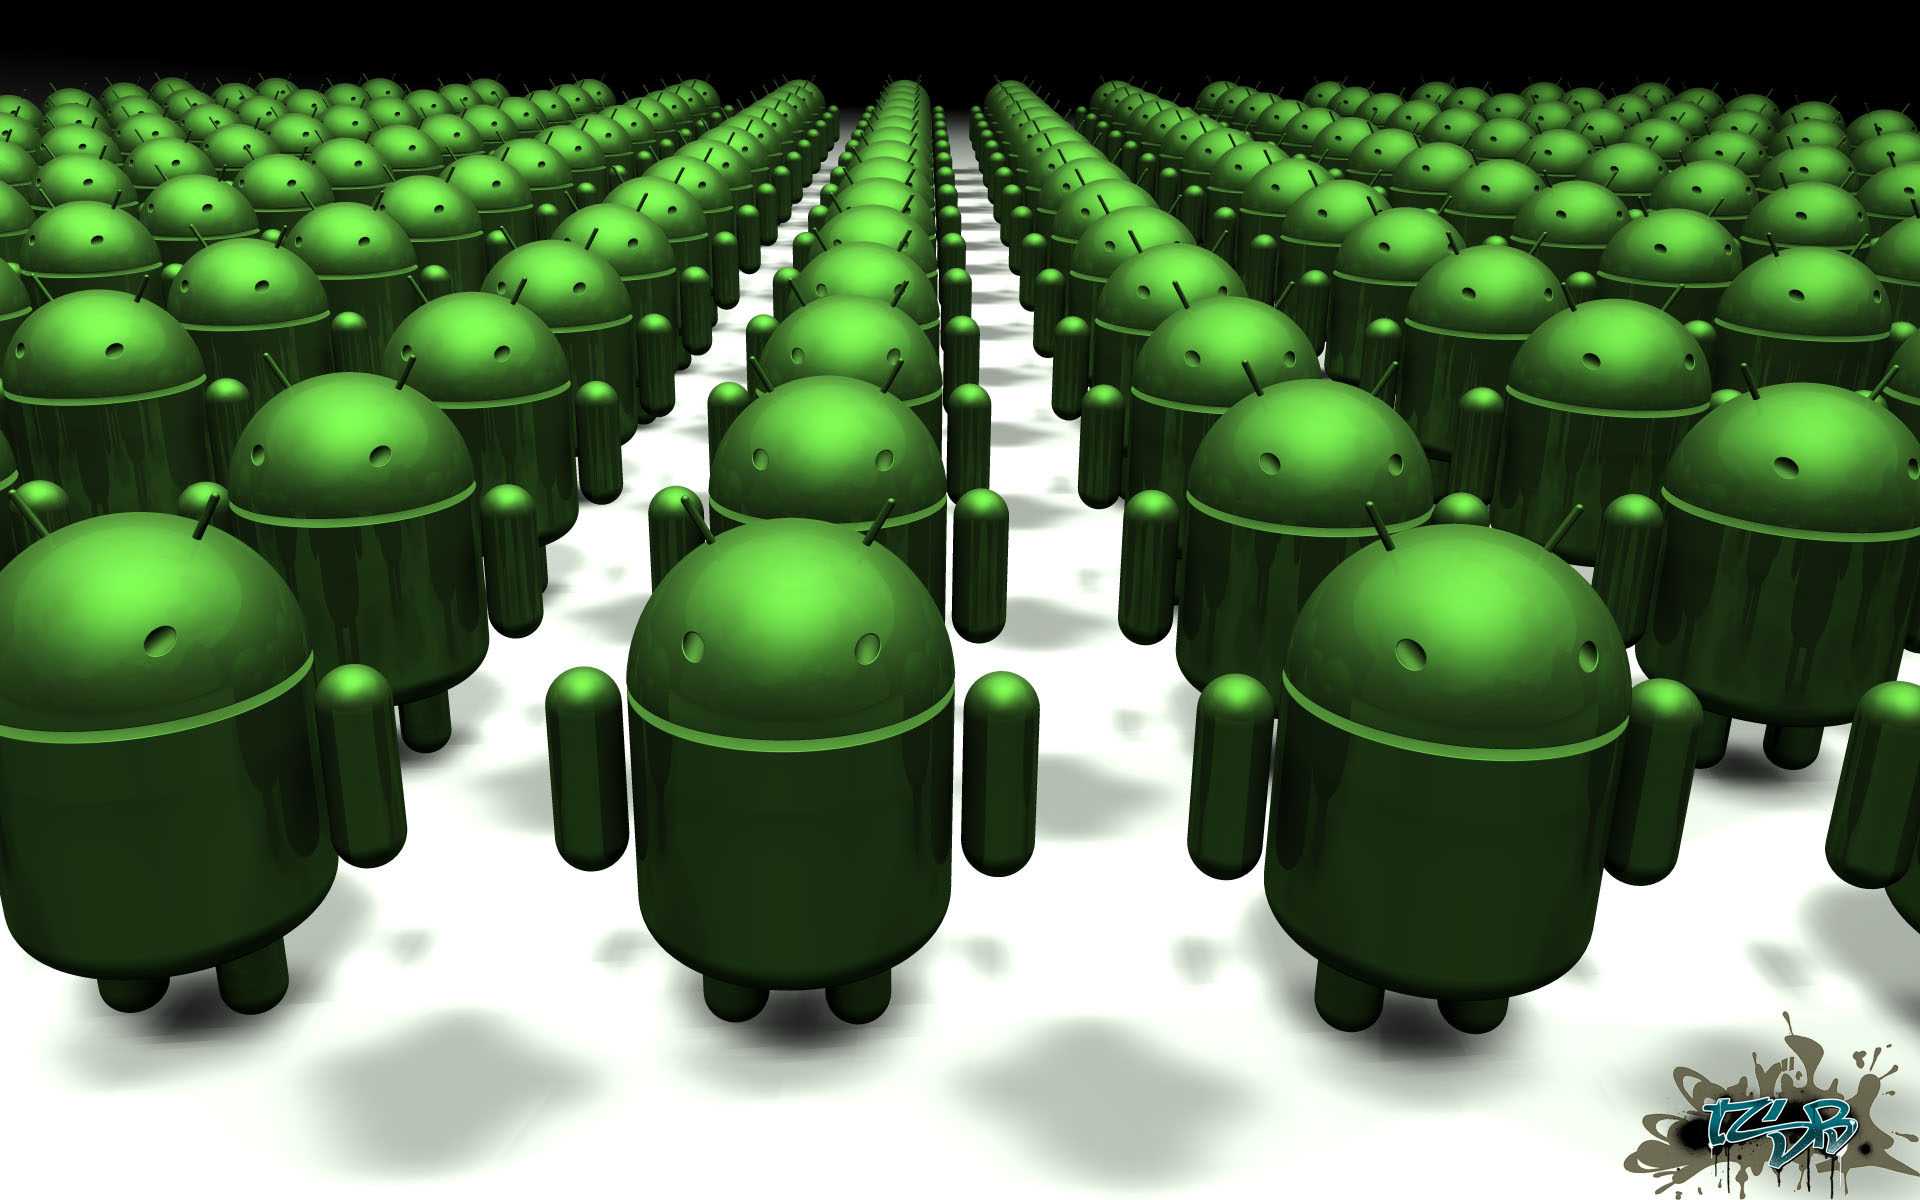 7 Effective Ideas to Market an Android Application